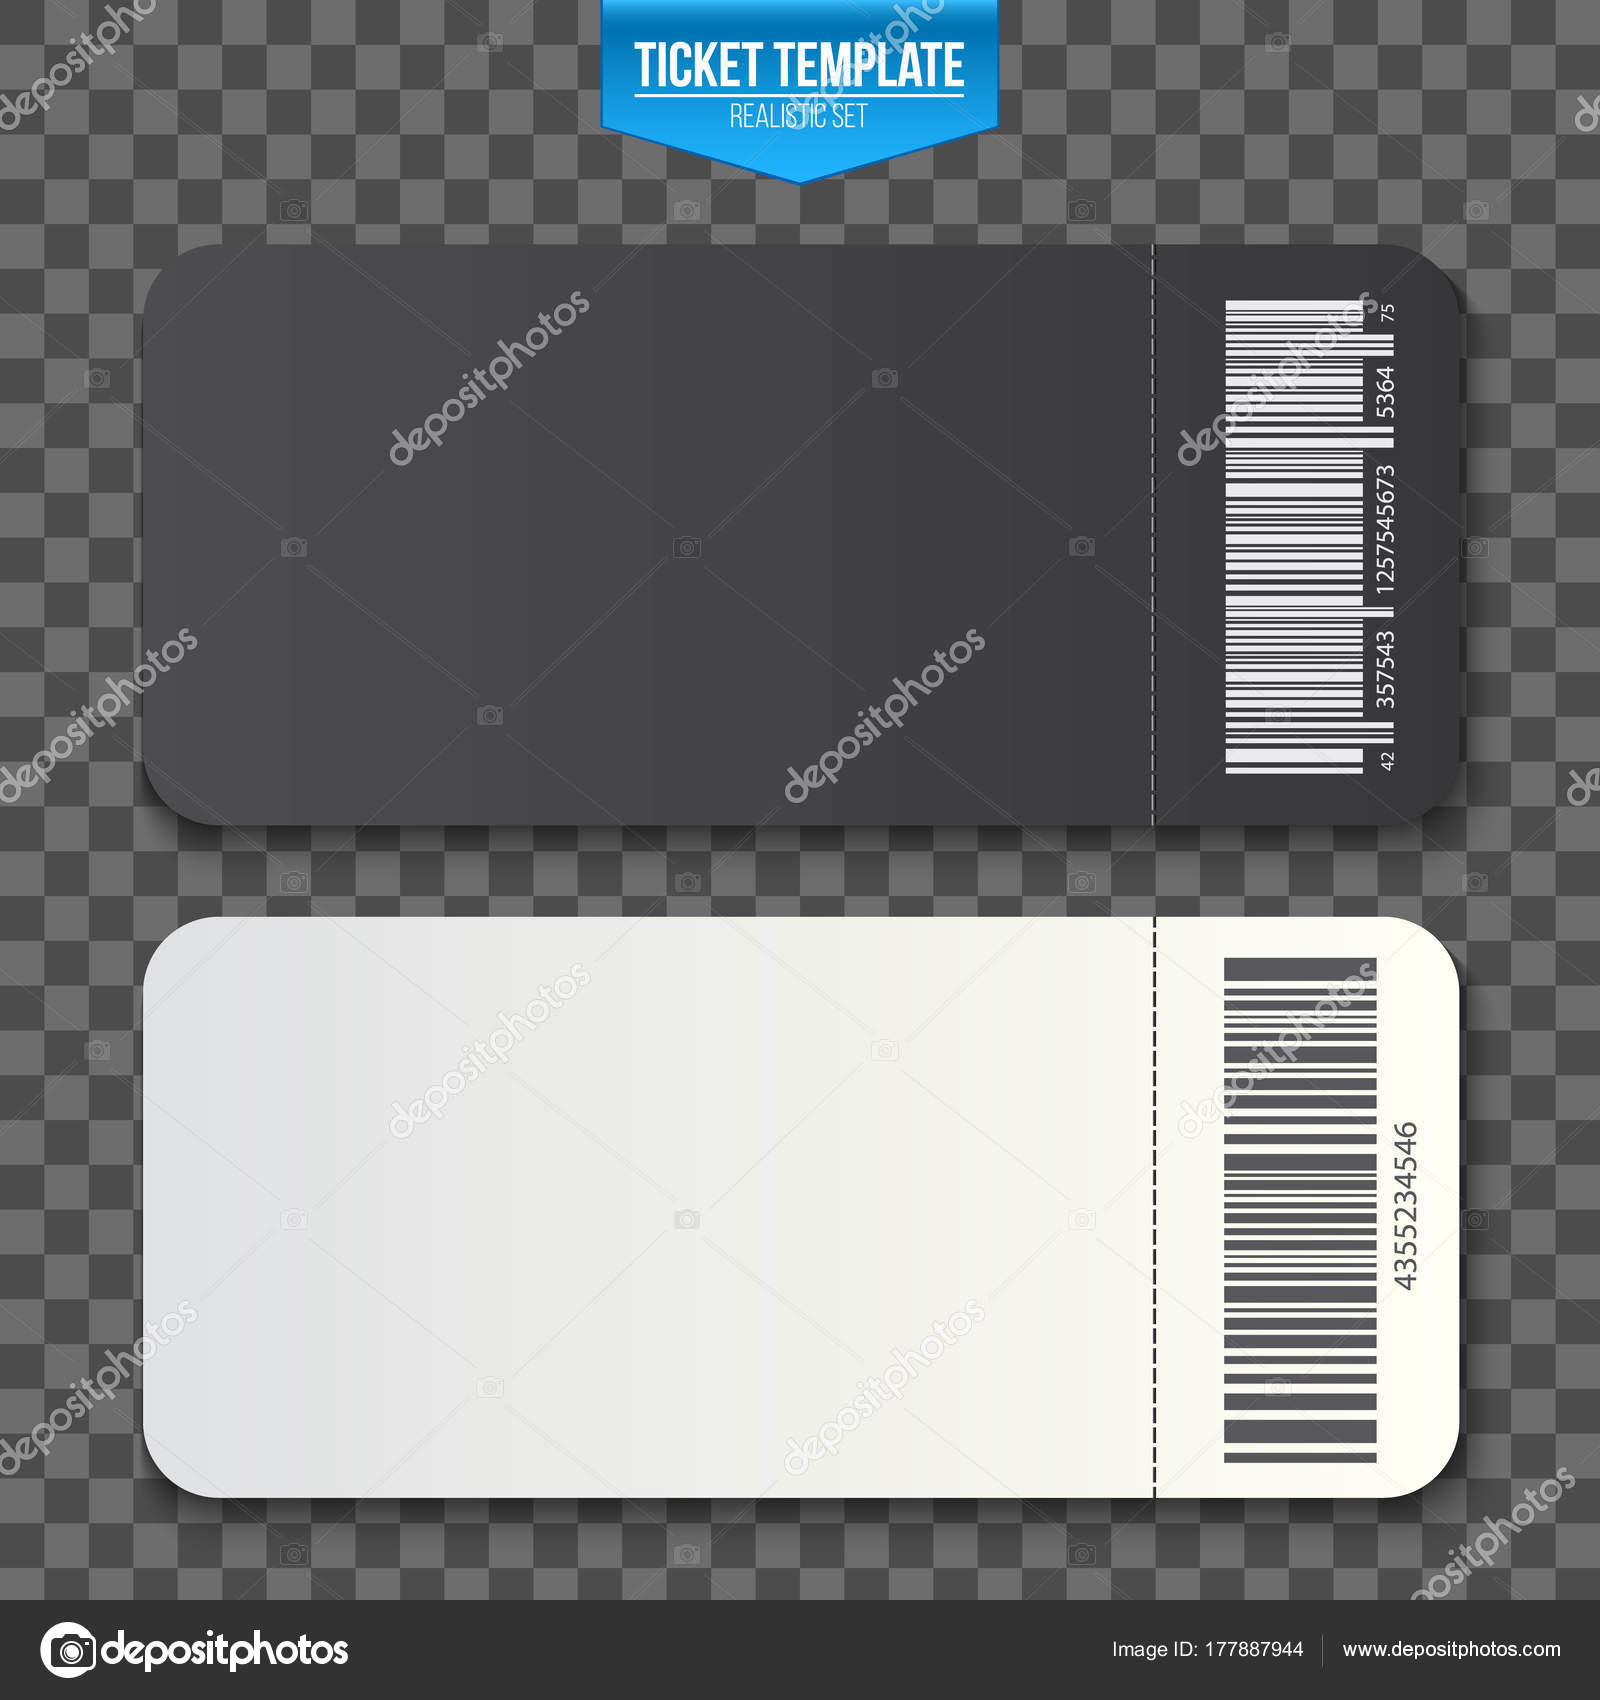 Kreative Vektor Illustration Von Leeren Ticket Vorlage Mockup Set ...